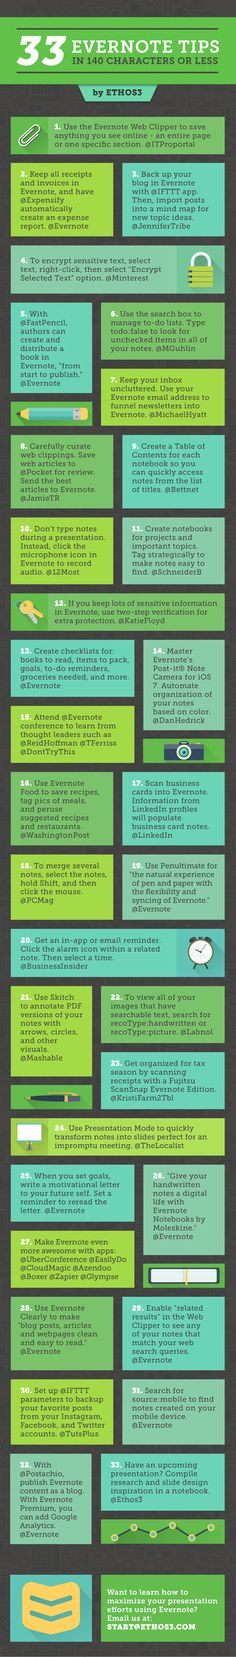 33 Evernote Tips for, in 140 characters or less - infographic